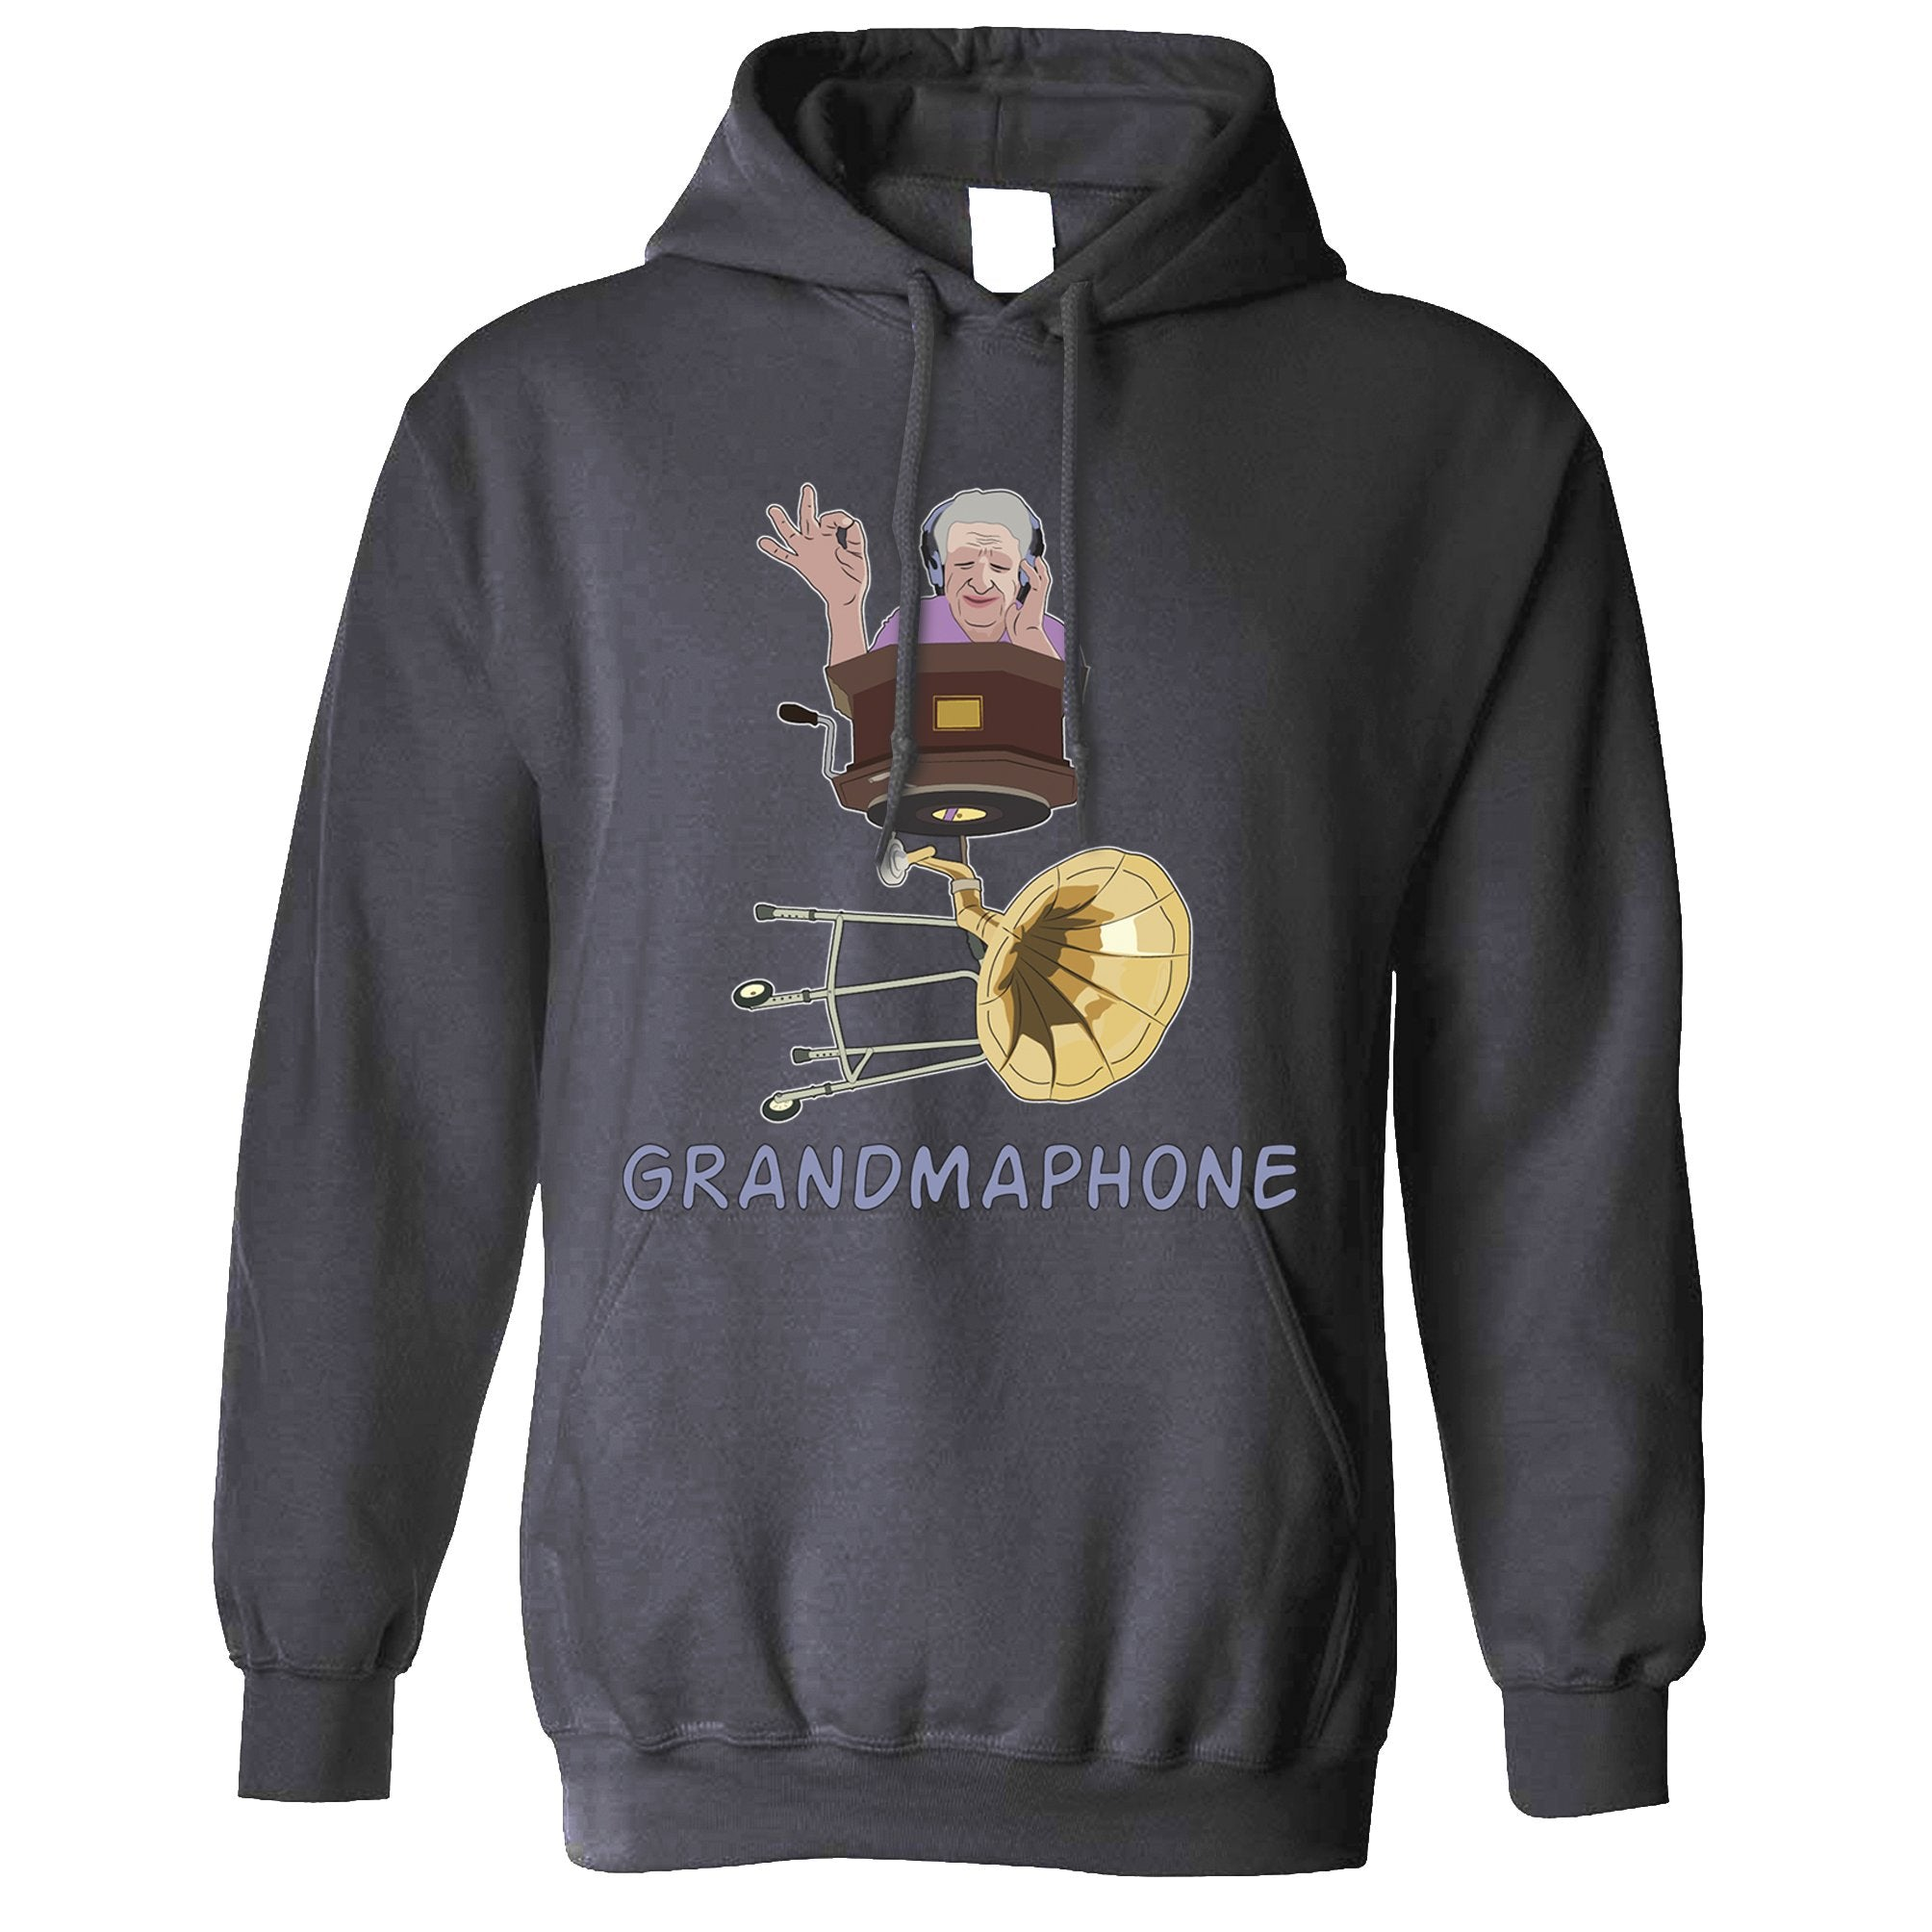 Novelty Music Hoodie Grandmaphone Illustration Hooded Jumper